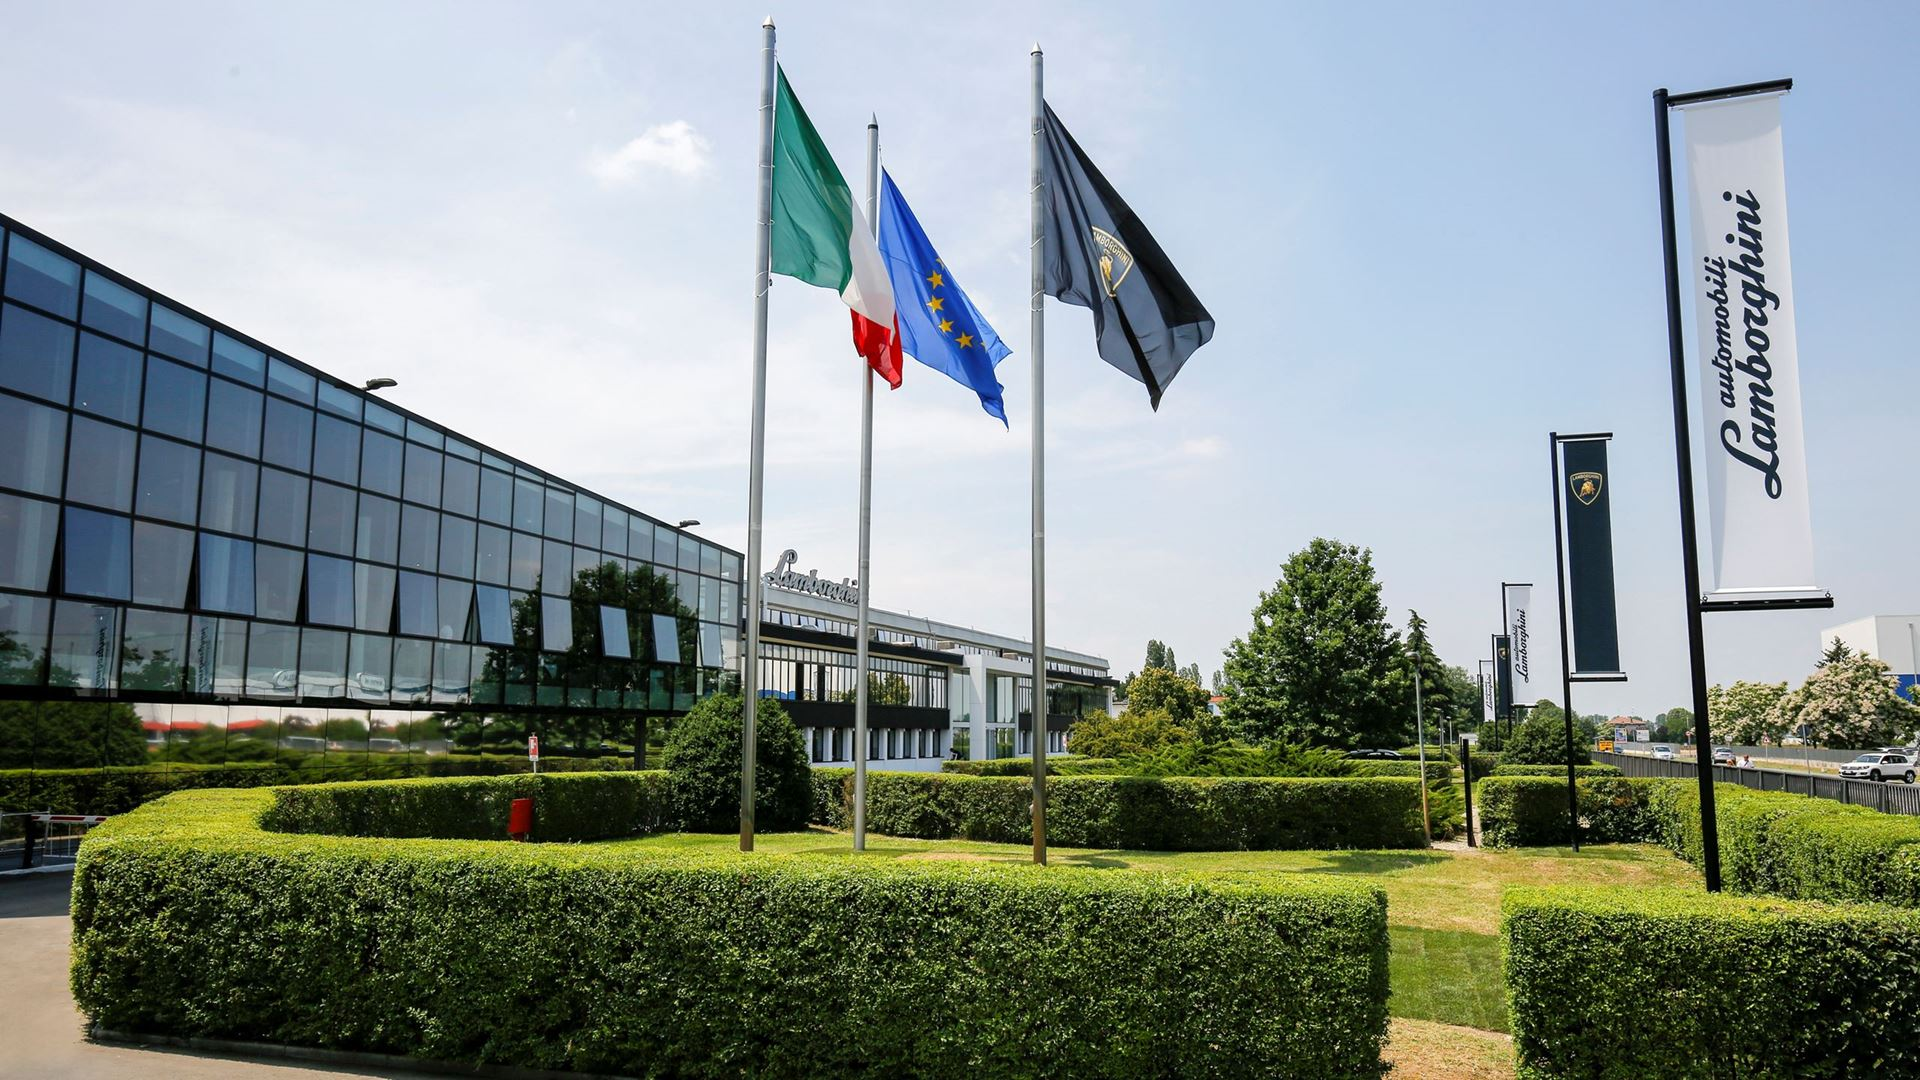 Automobili Lamborghini: Strong profitability and second-best year ever for turnover and sales - Image 8